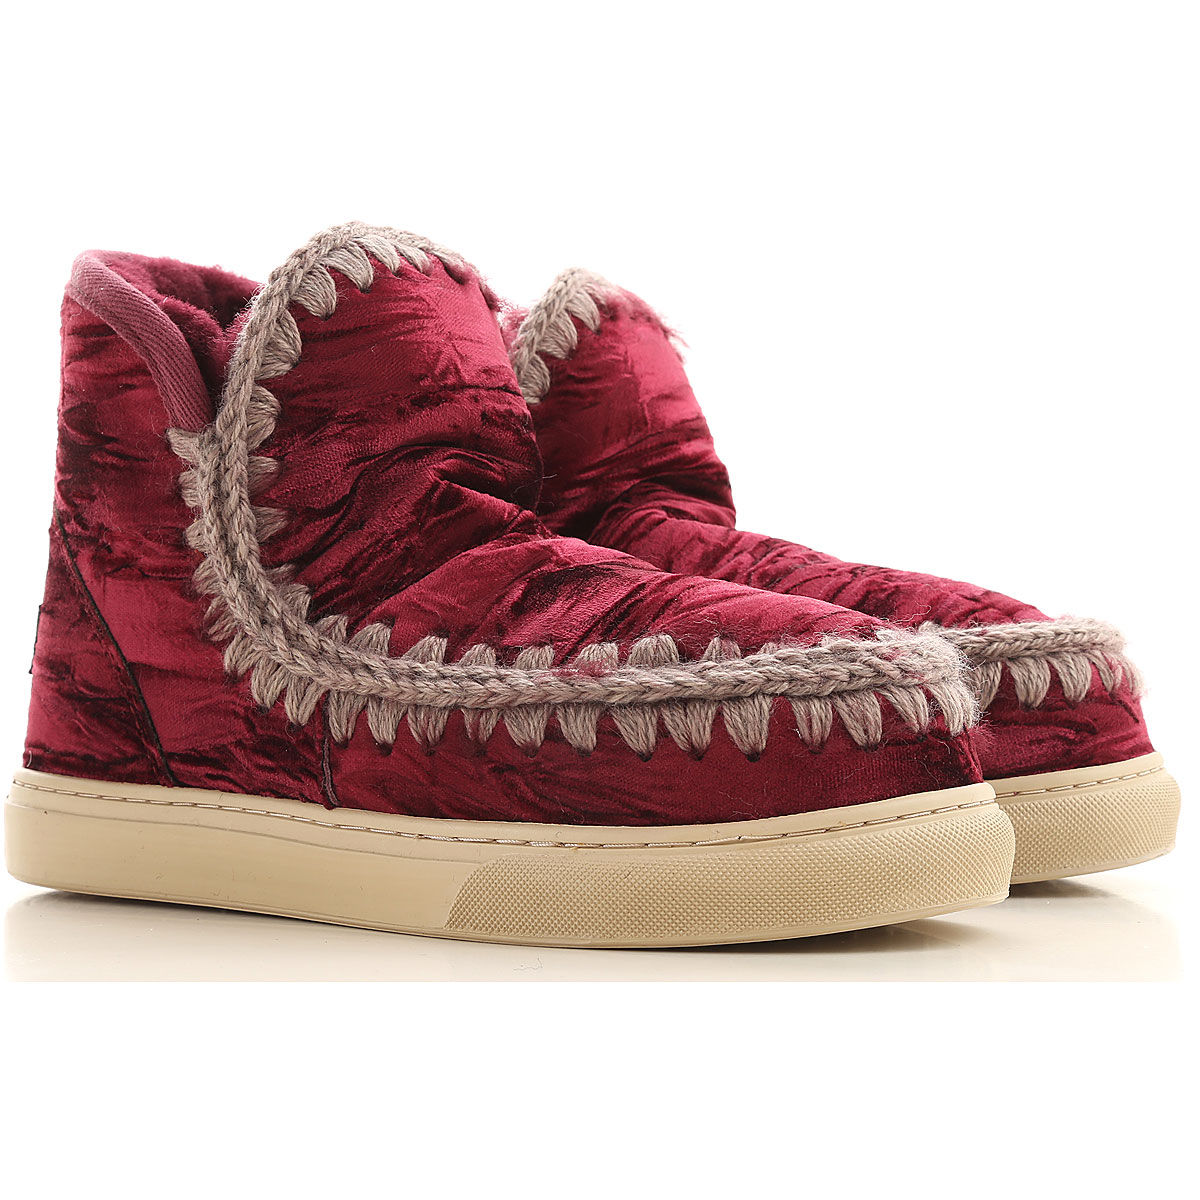 Mou Boots for Women, Booties On Sale in Outlet, Velvet, 2019, EUR 37 - UK 4 - USA 6.5 EUR 38 - UK 5 - USA 7.5 EUR 39 - UK 6 - USA 8.5 EUR 40 - UK 7 -